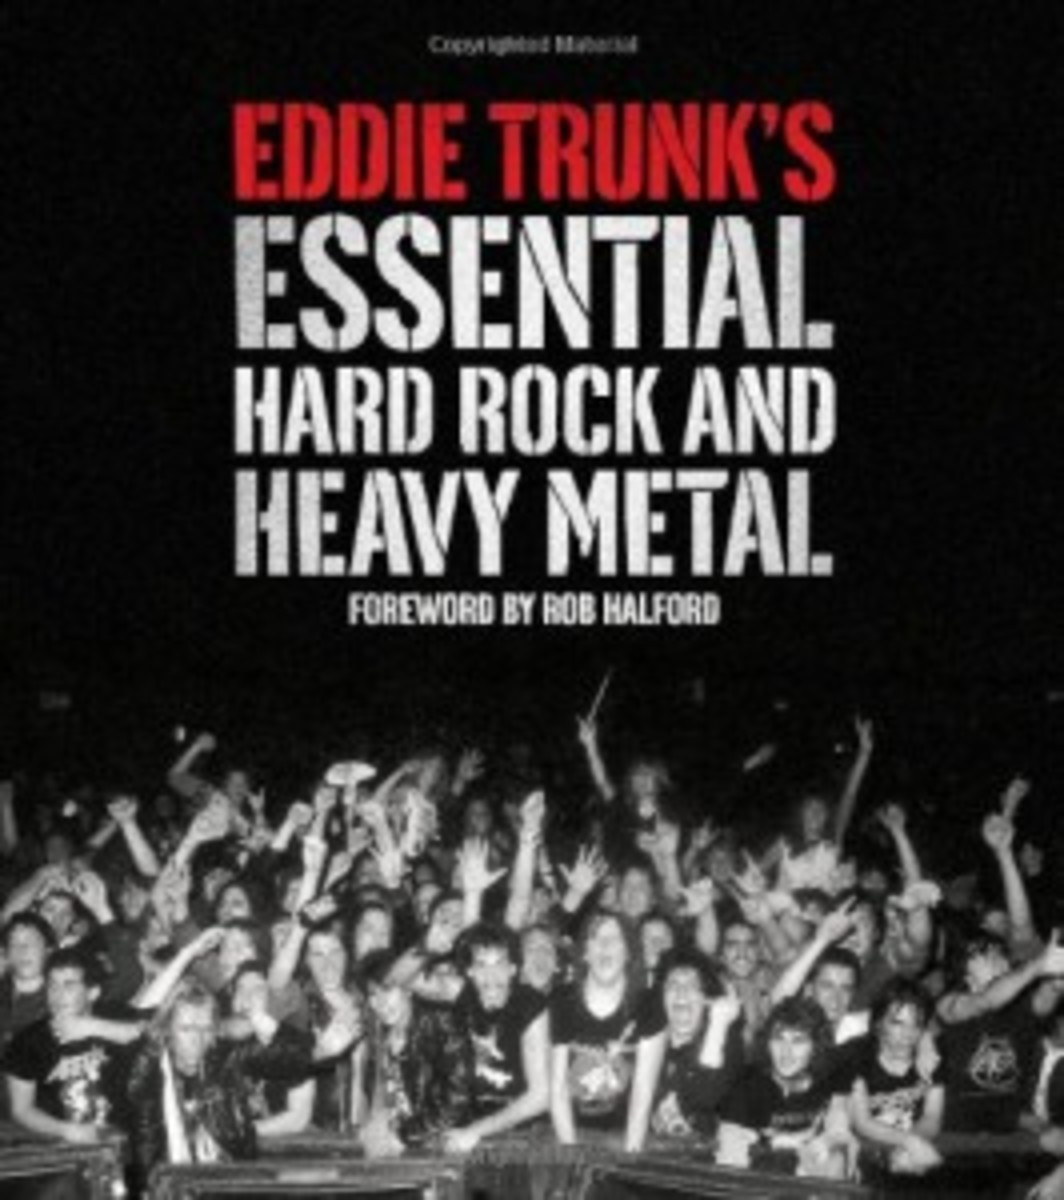 Book-Eddie-Trunk-Essential-Hard-Rock-266x300-1